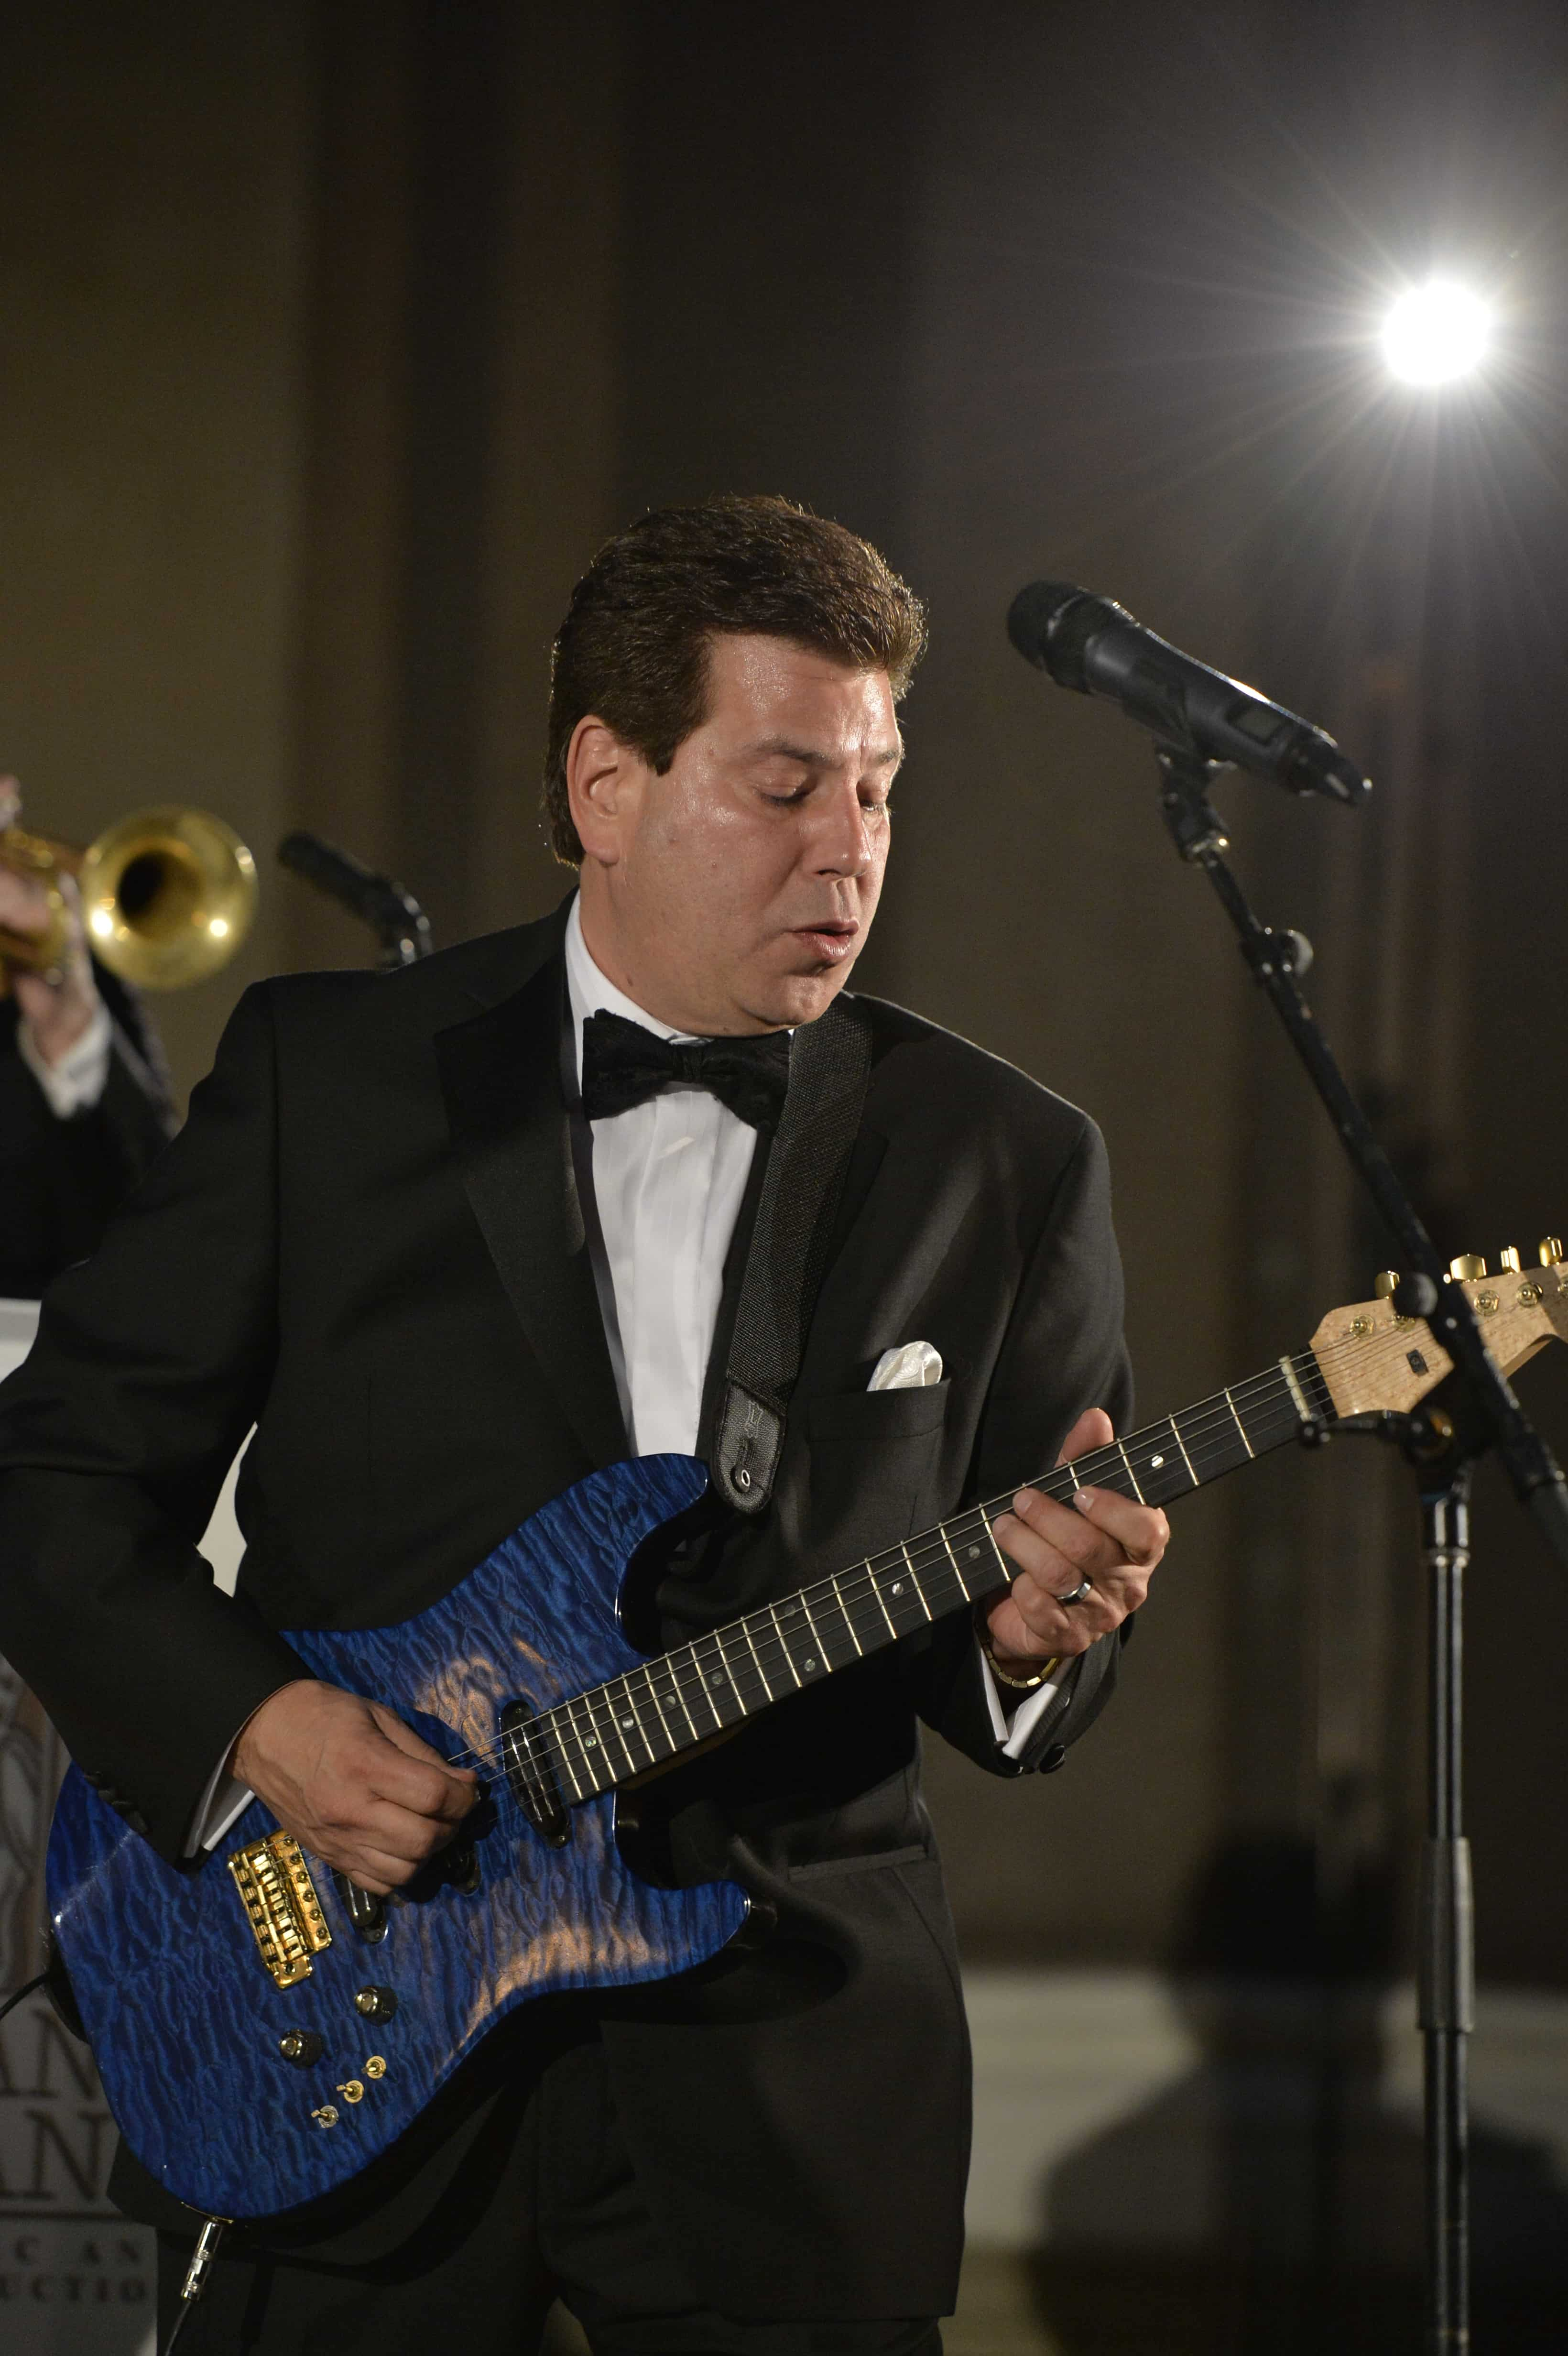 Band leader Mike Herman leads the Mike Herman Band for Hank Lane Music